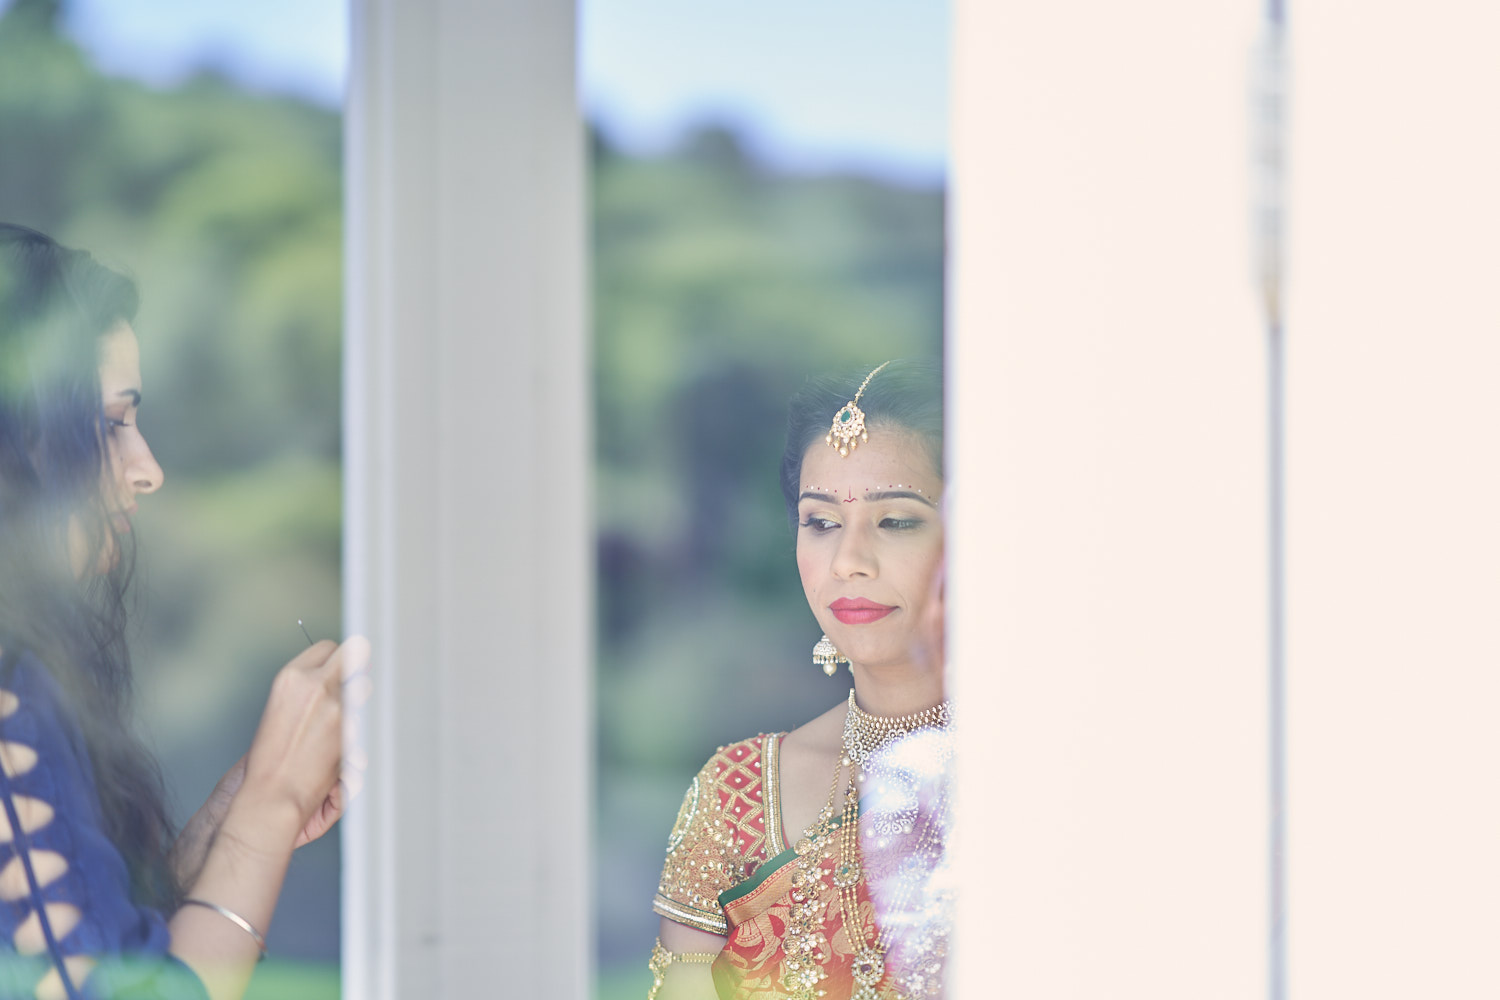 south-indian-wedding-ceremony-photography-by-afewgoodclicks-net-in-saratoga 44.jpg